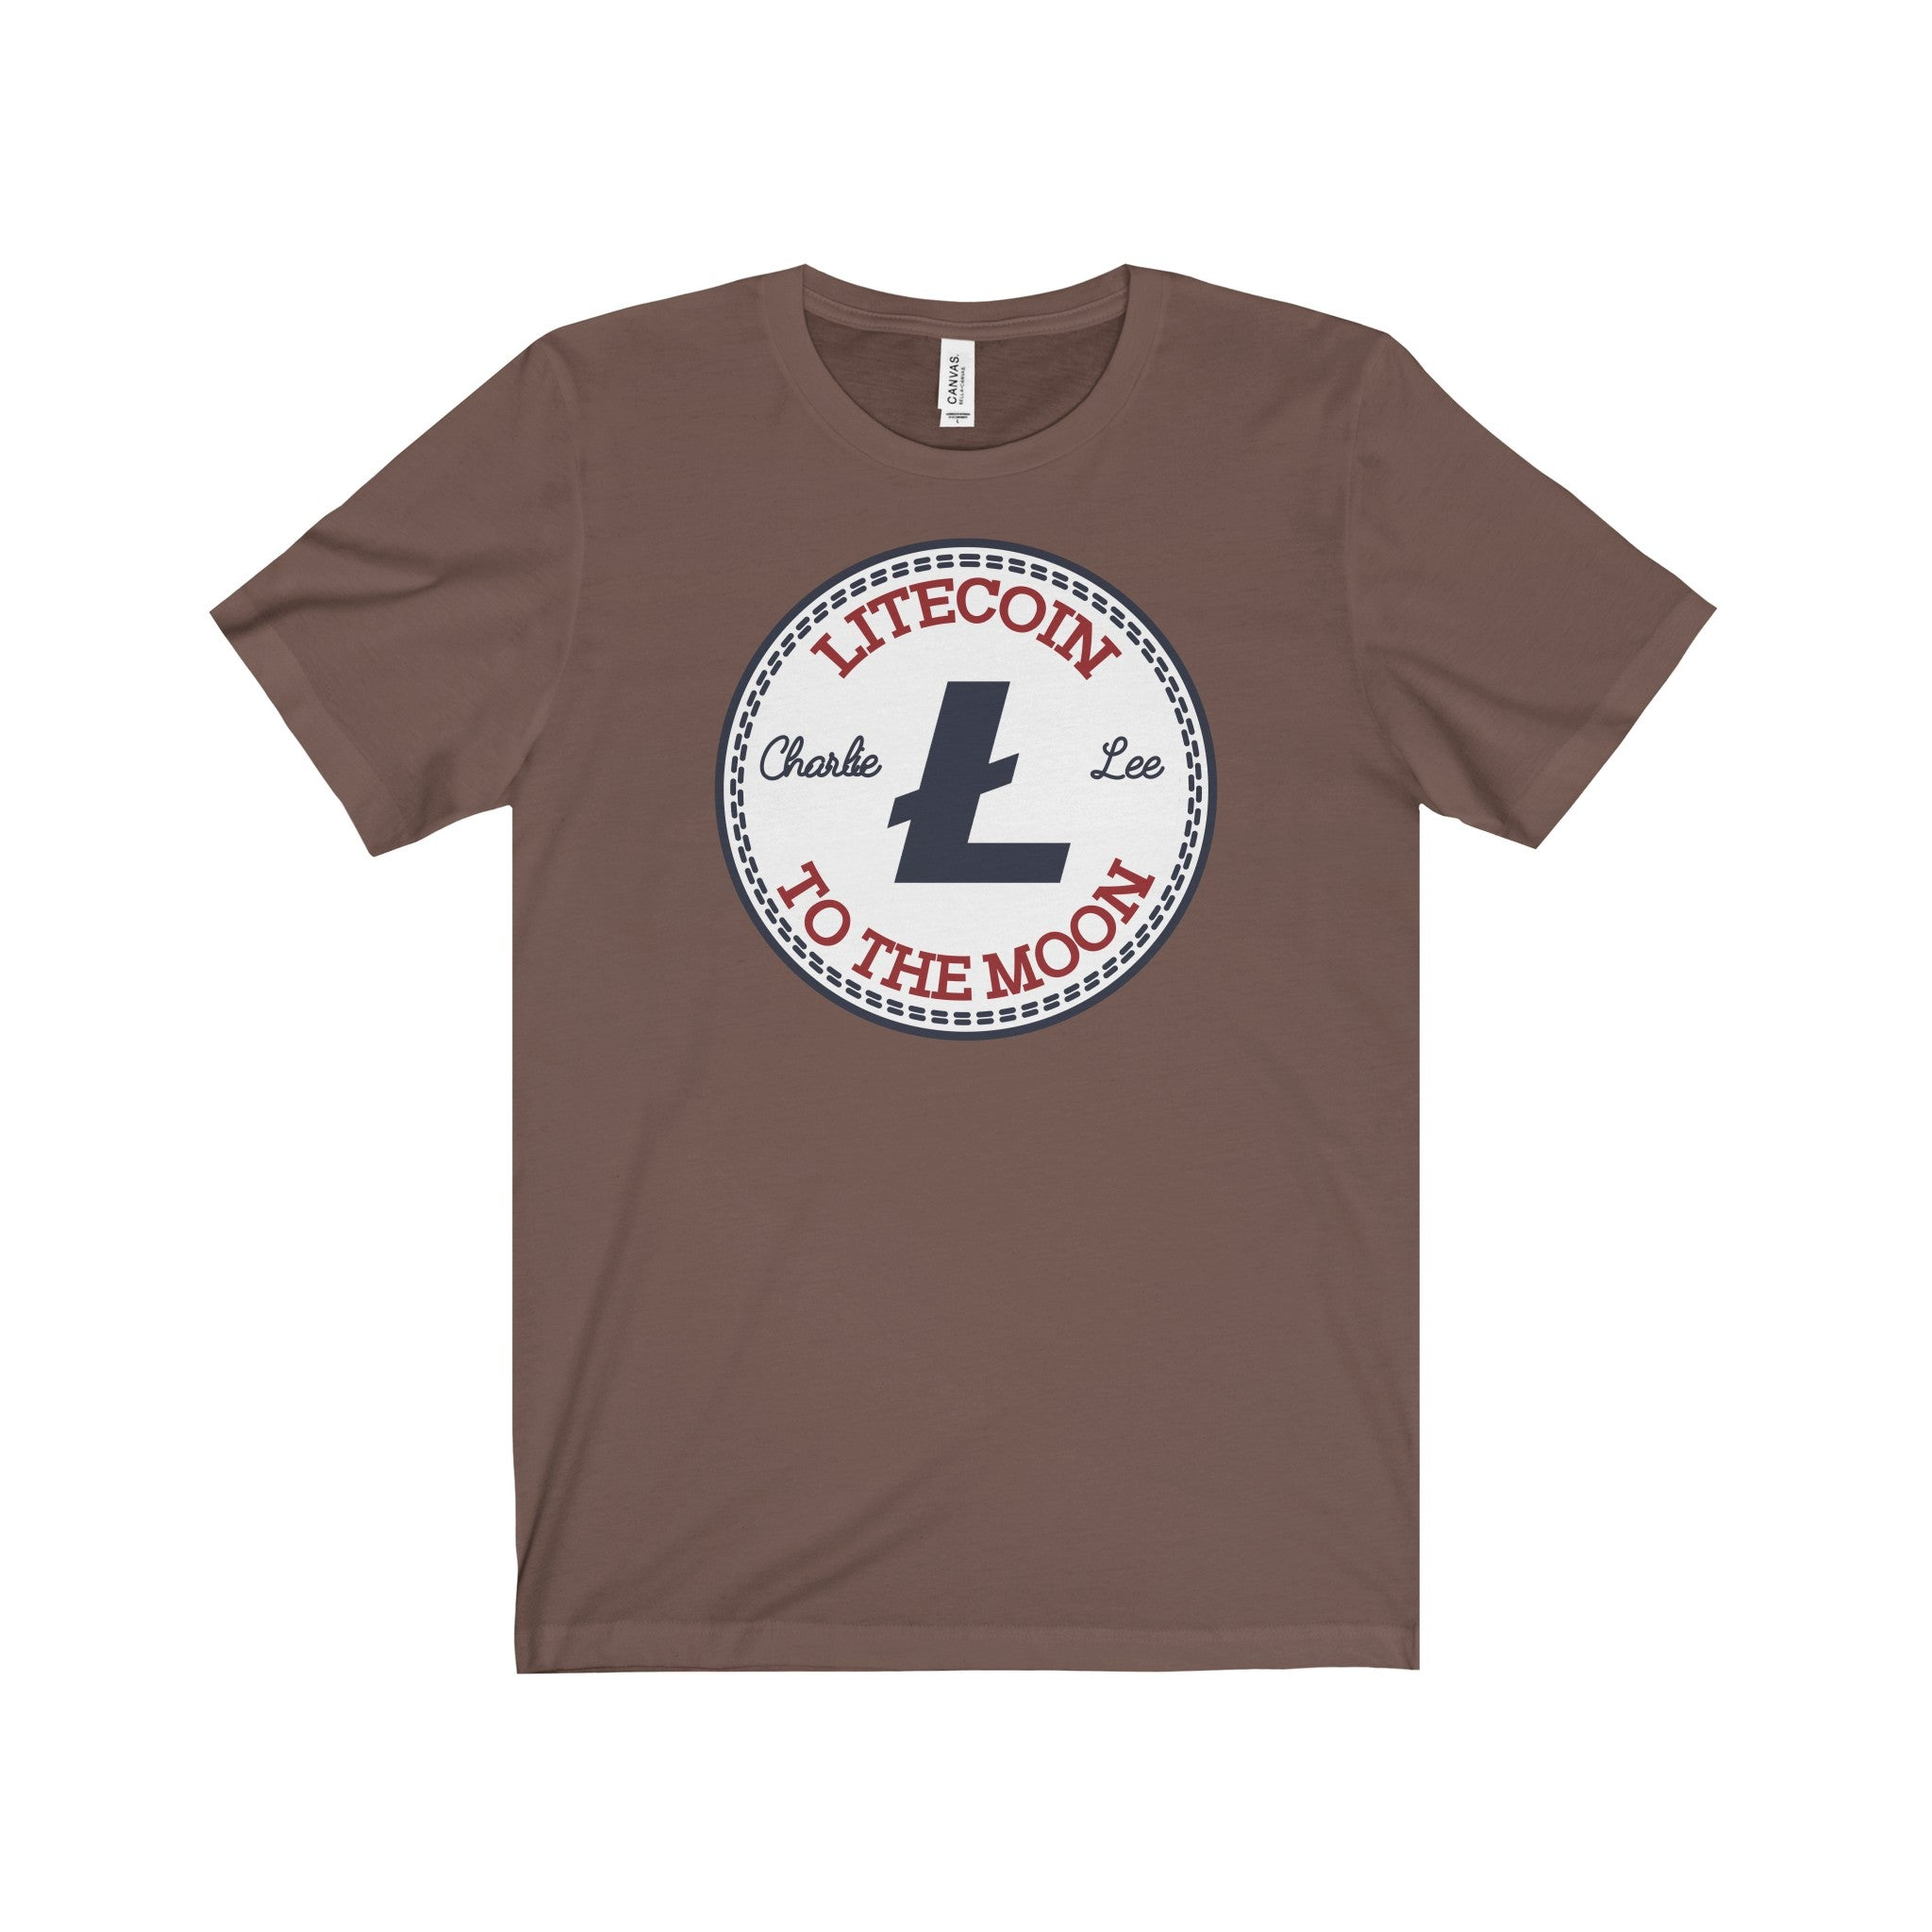 Litecoin All Star Unisex Jersey Short Sleeve Tee